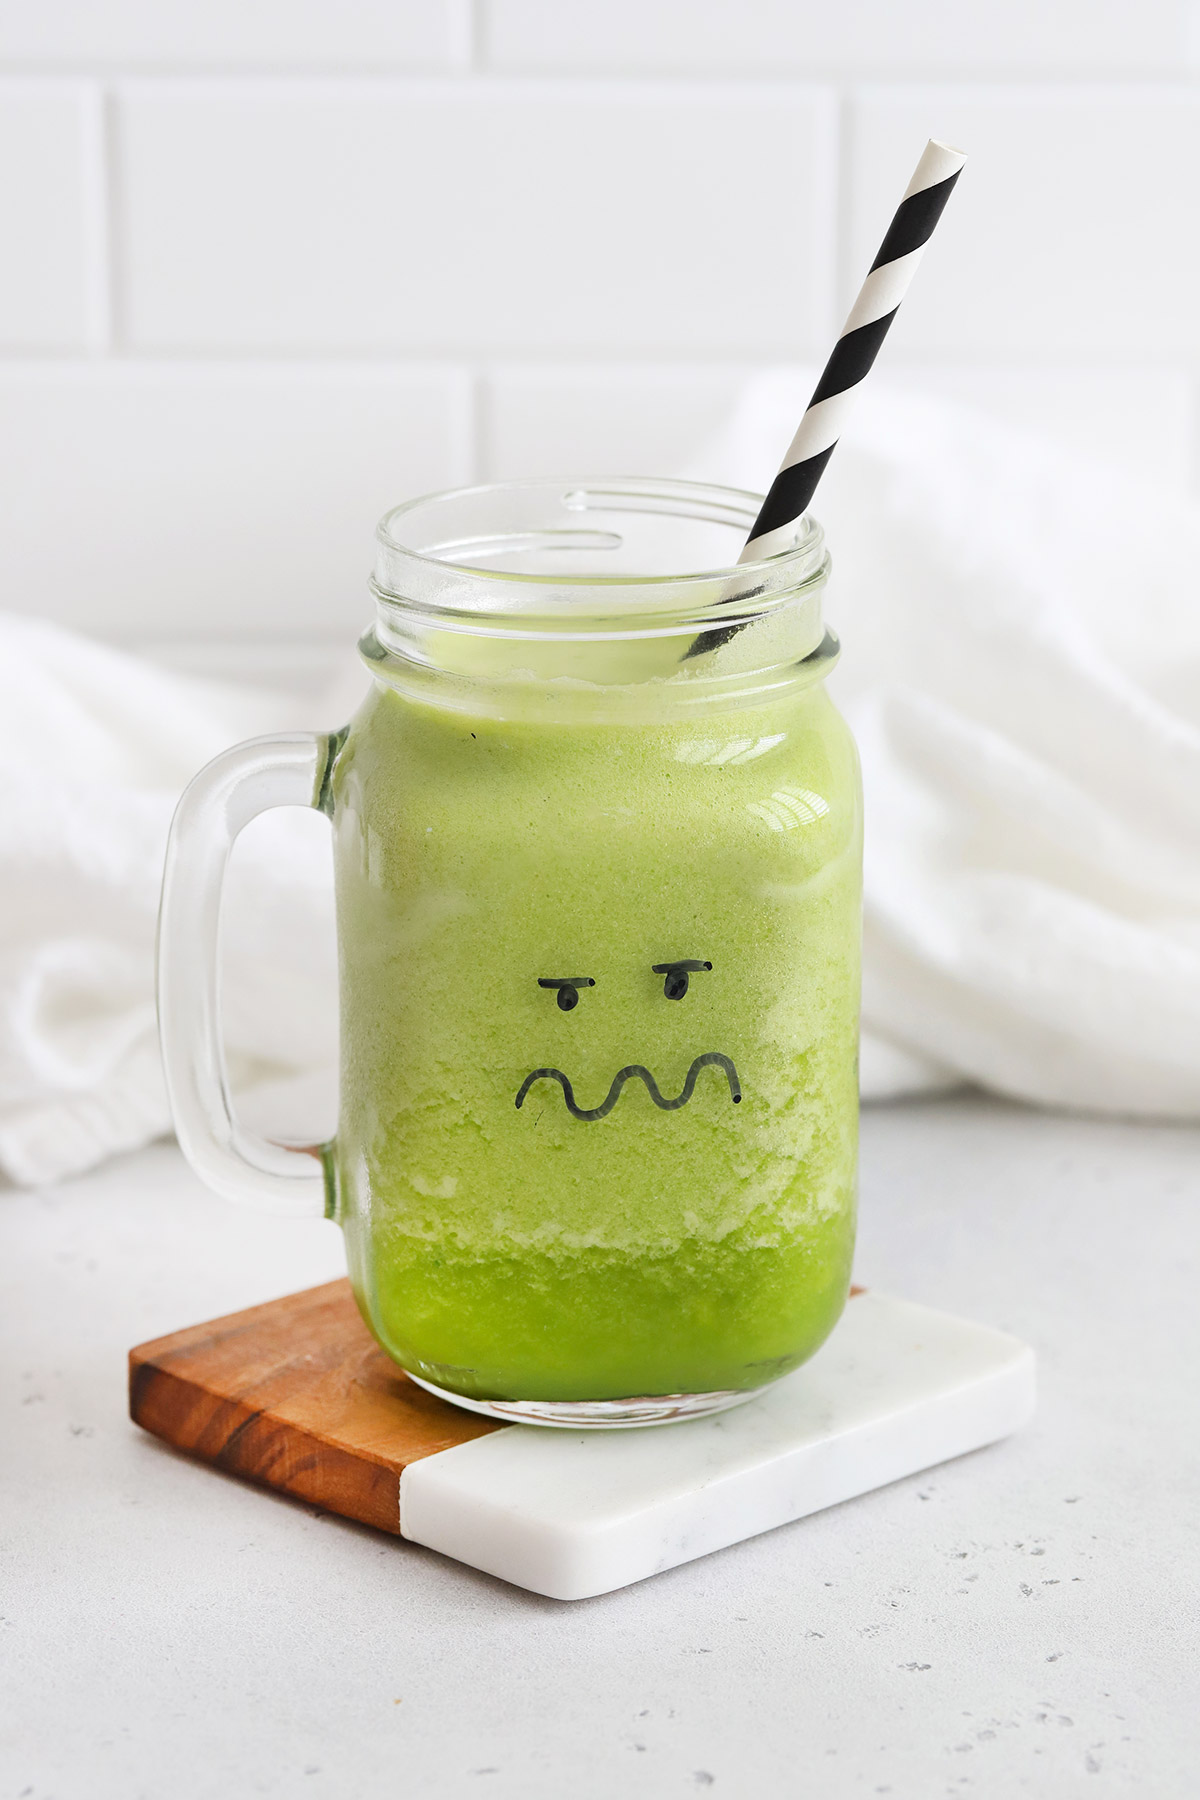 Green Monster Face Smoothie in a mason jar glass with a black and white striped straw